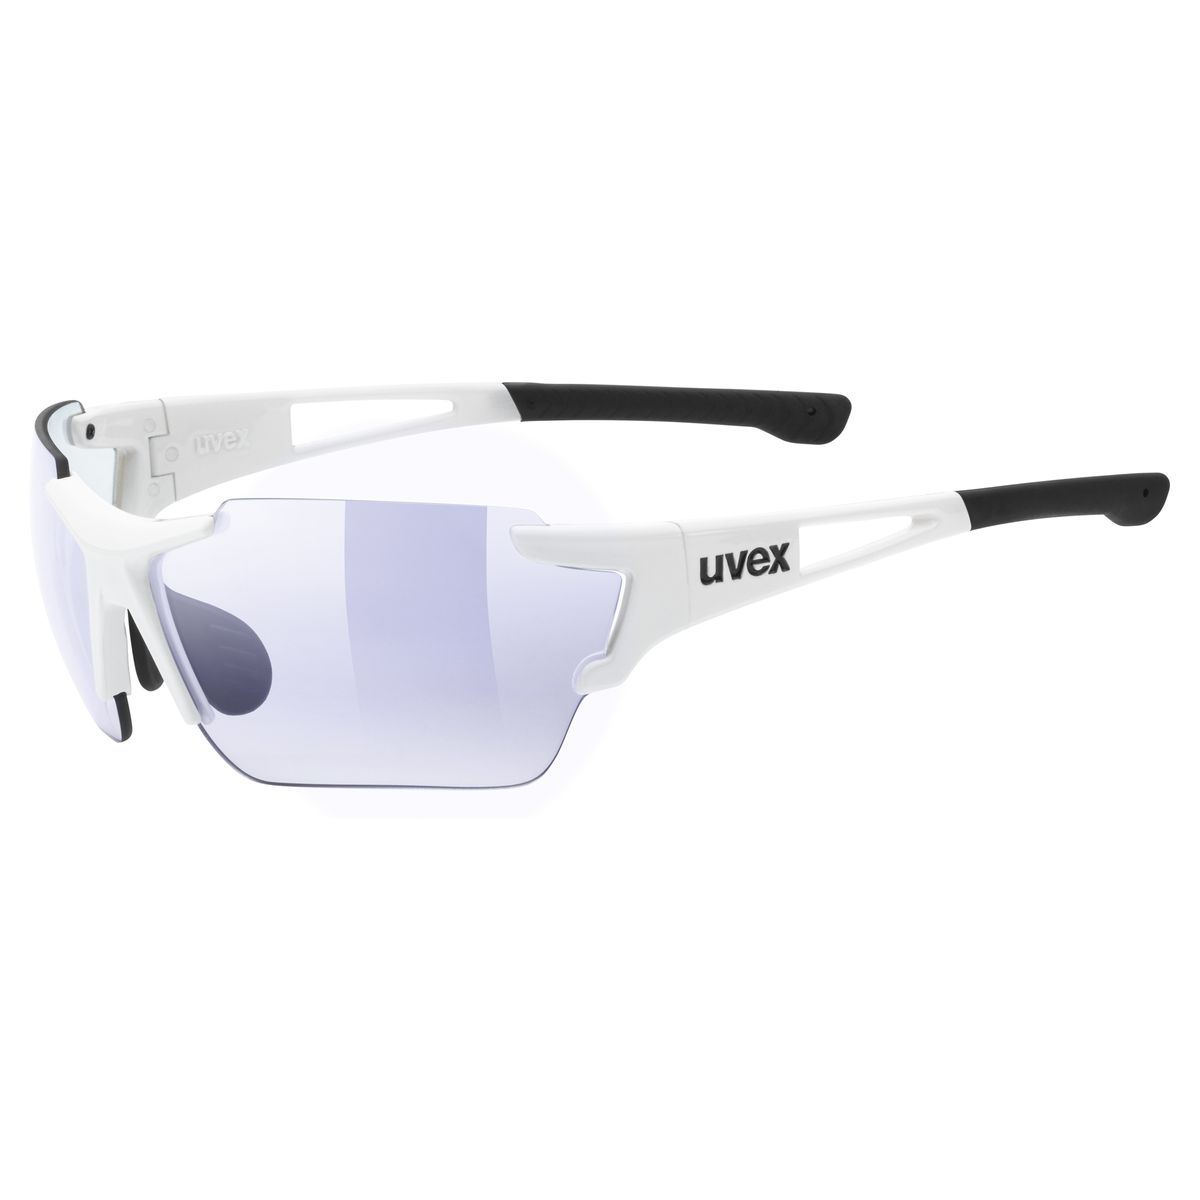 SPORTSTYLE 803 RACE VM glasses